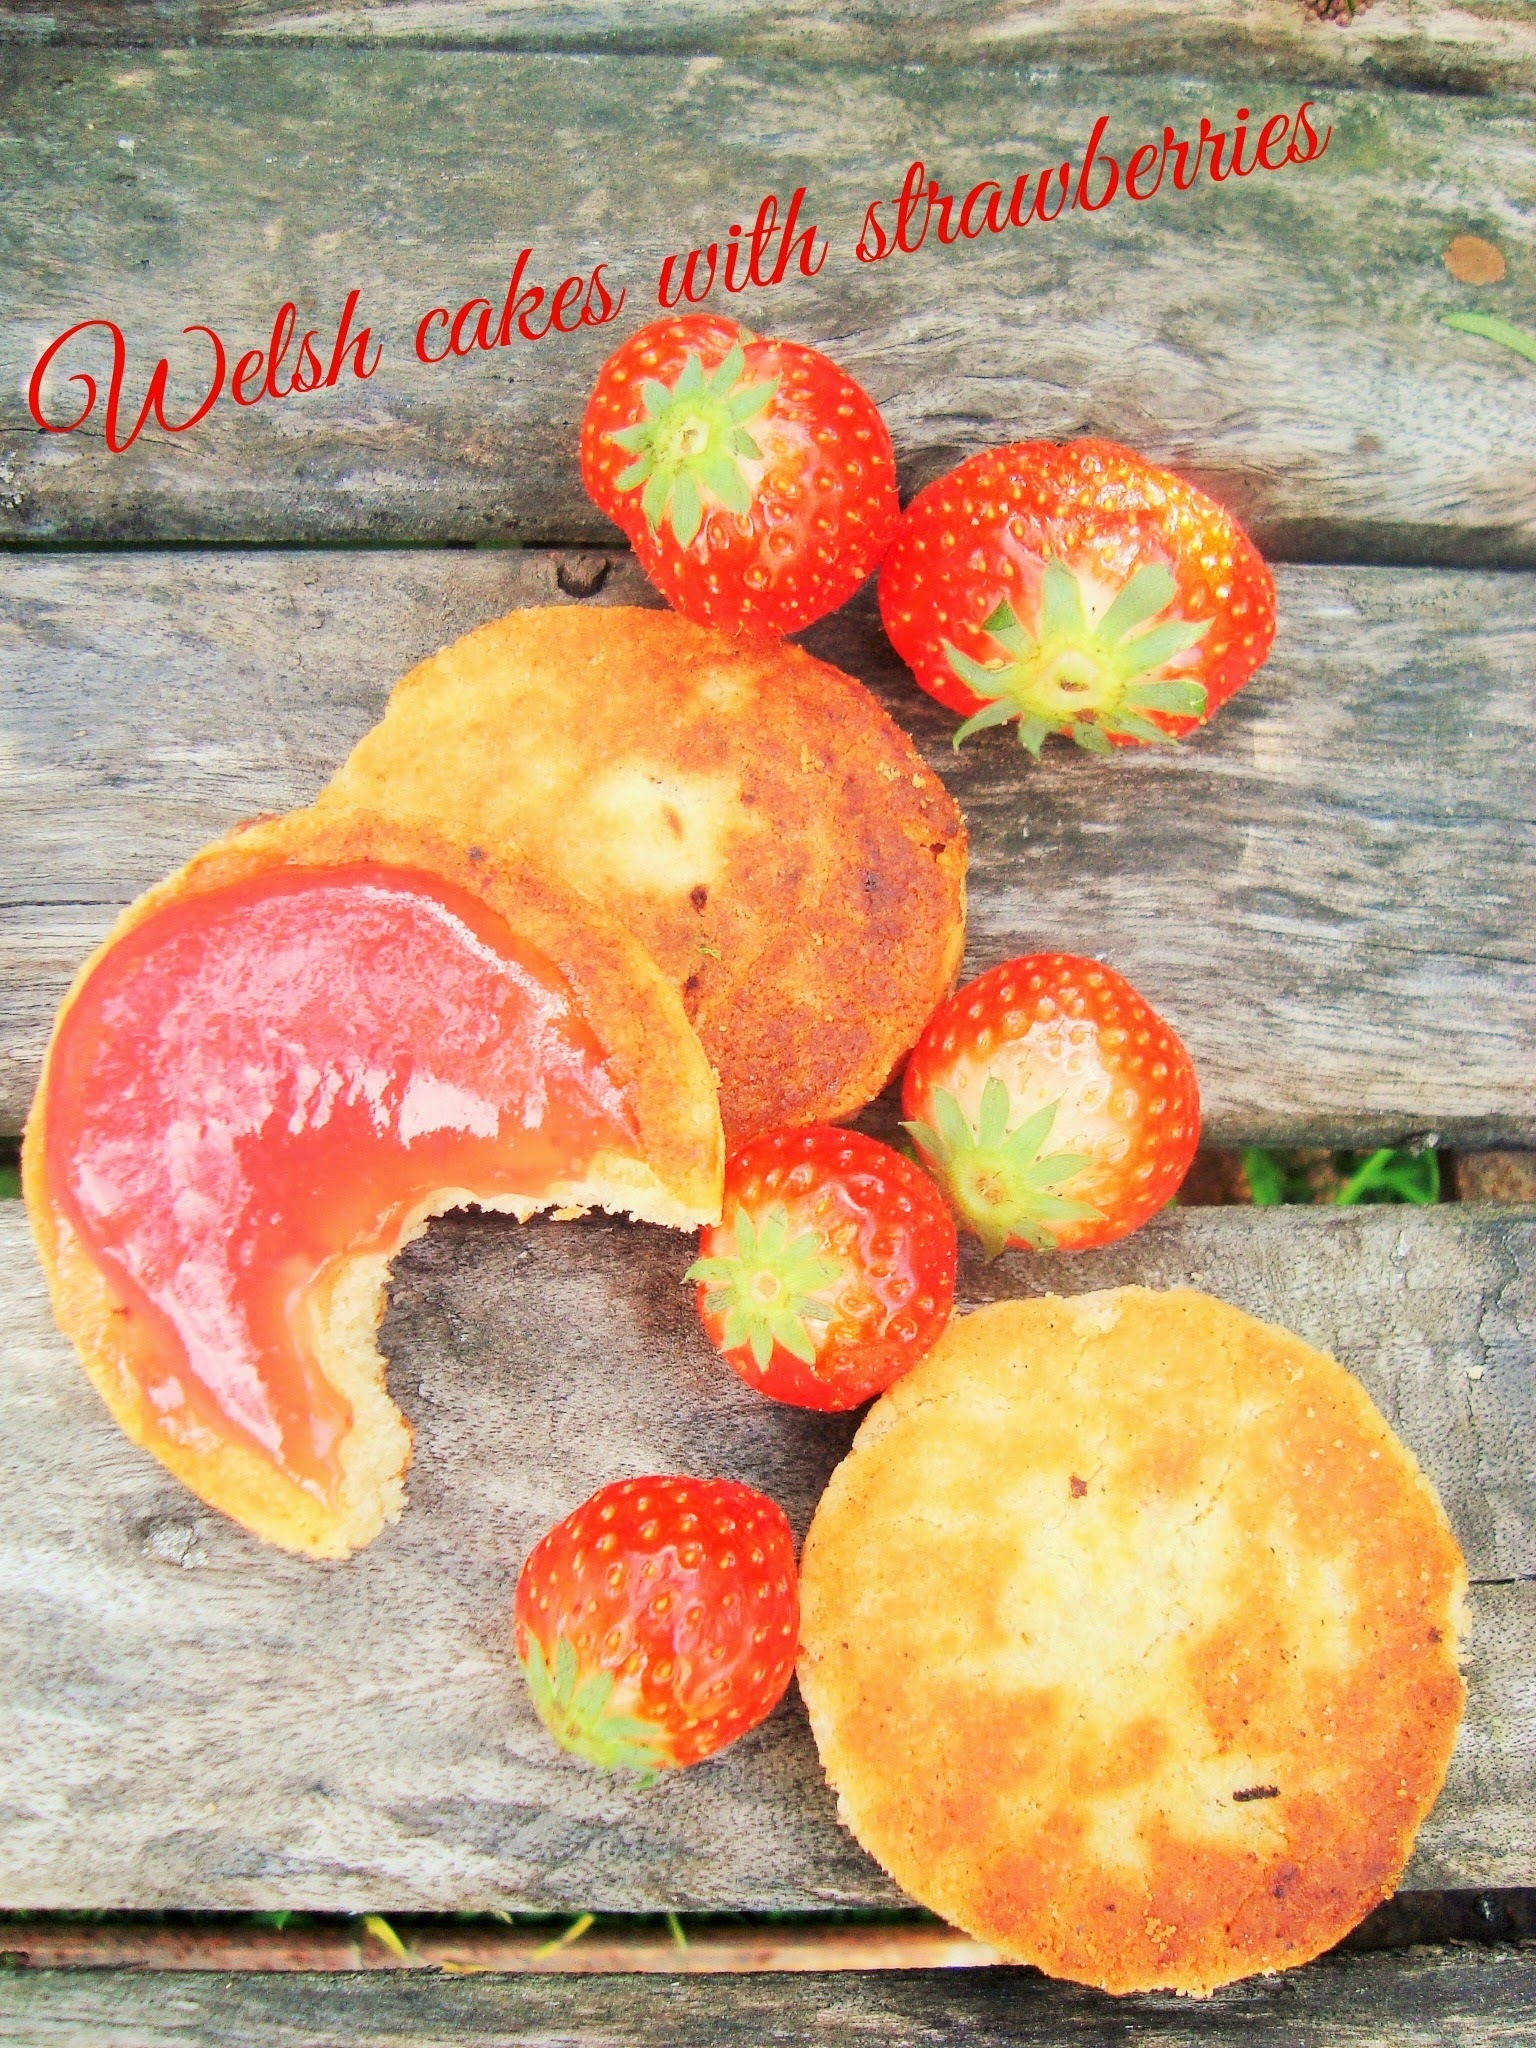 Walesin kakut mansikoilla, Welsh cakes with strawberries